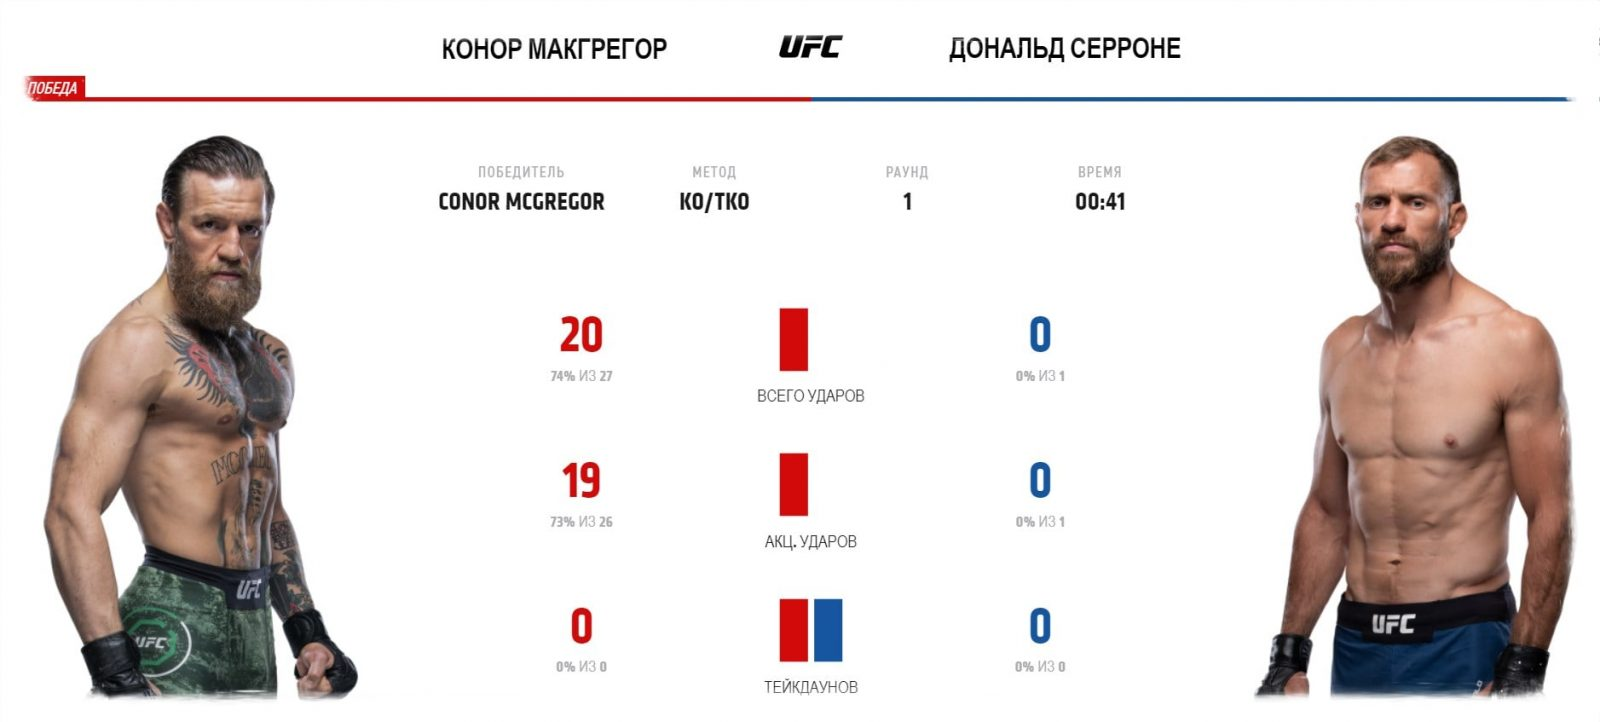 video-boya-konor-makgregor-donald-serrone-conor-mcgregor-donald-cerrone-ufc-246